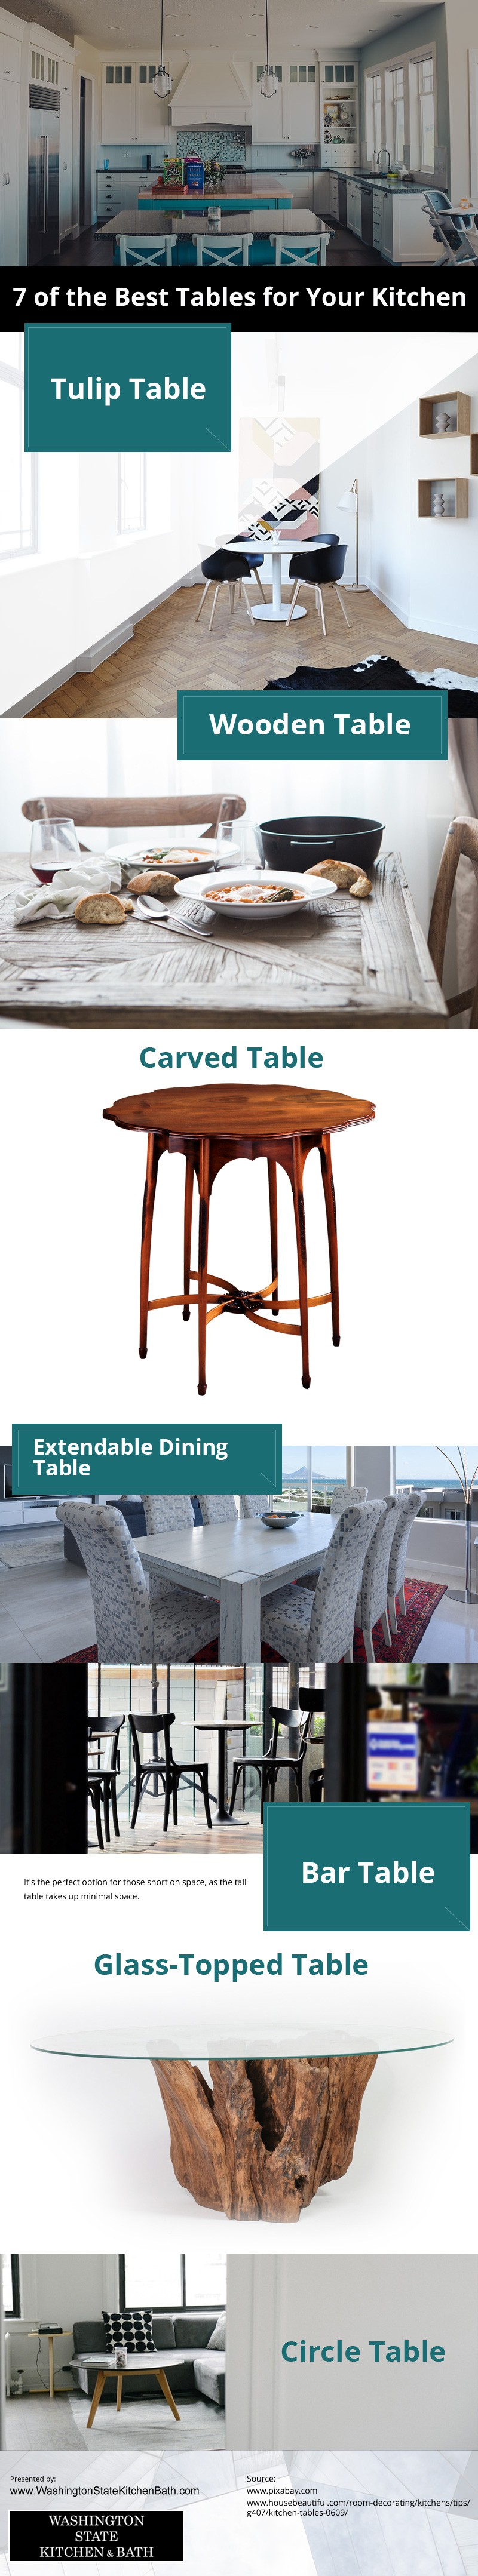 7 of the Best Tables for your Kitchen Infographic